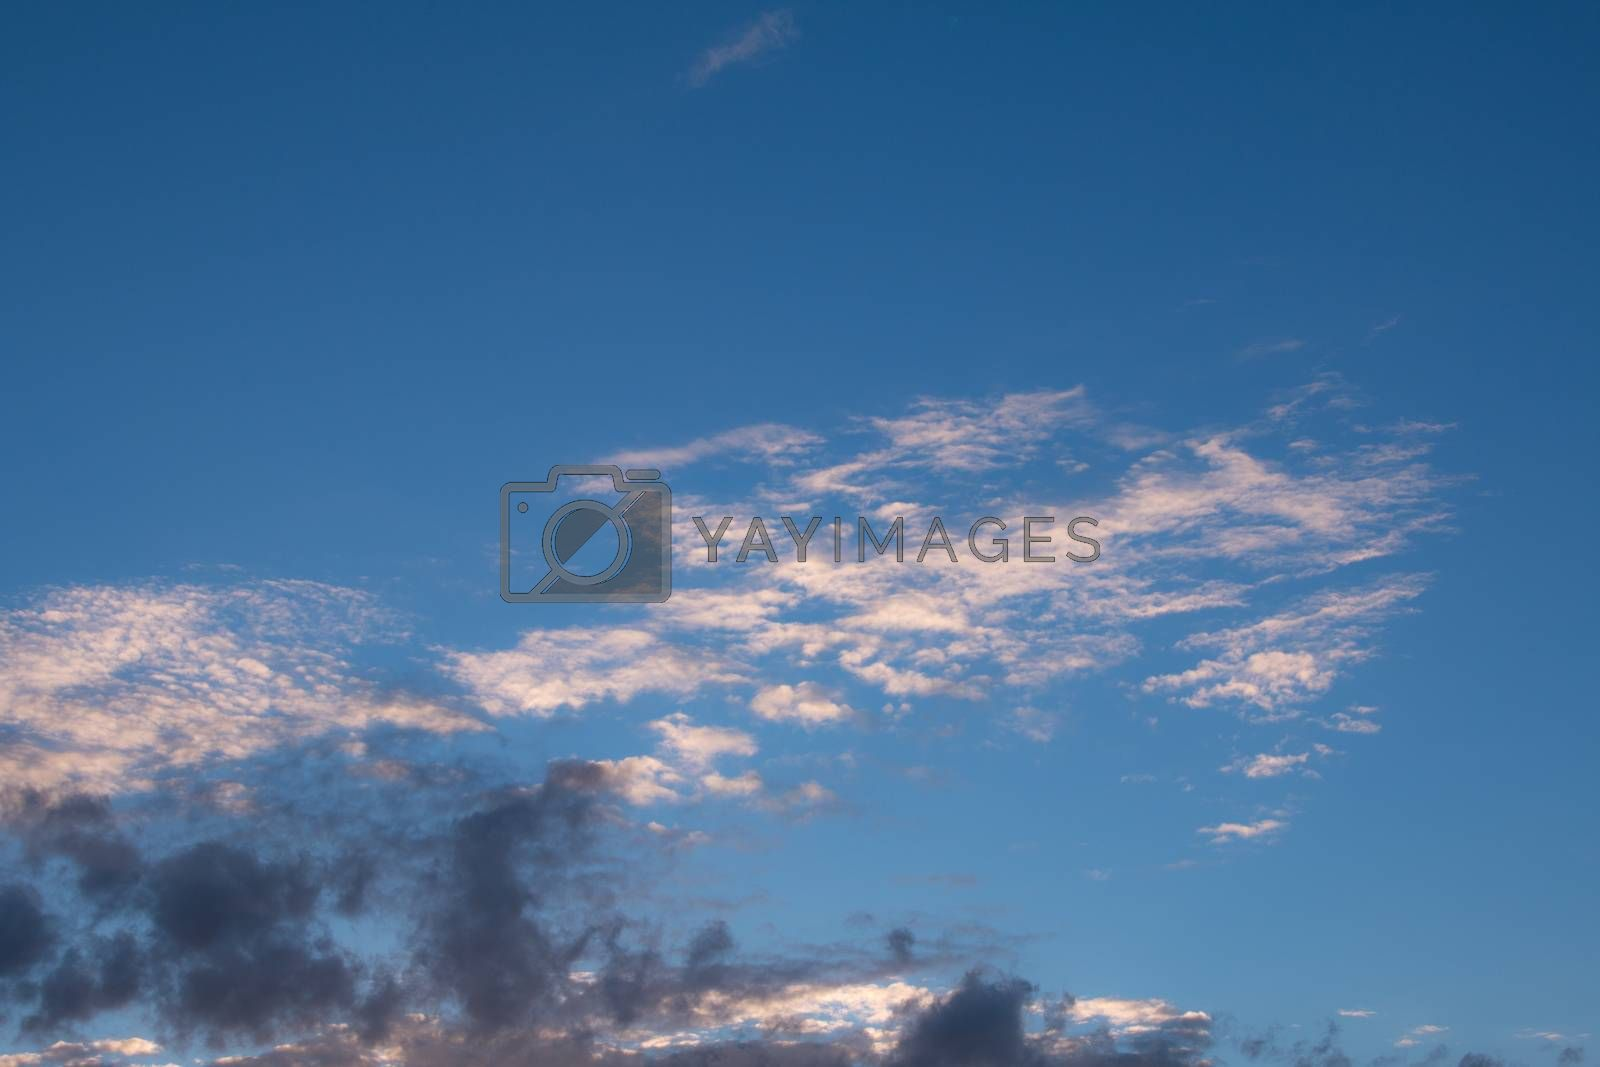 Beauty blue sky and clouds in daytime in Thailand by N_u_T